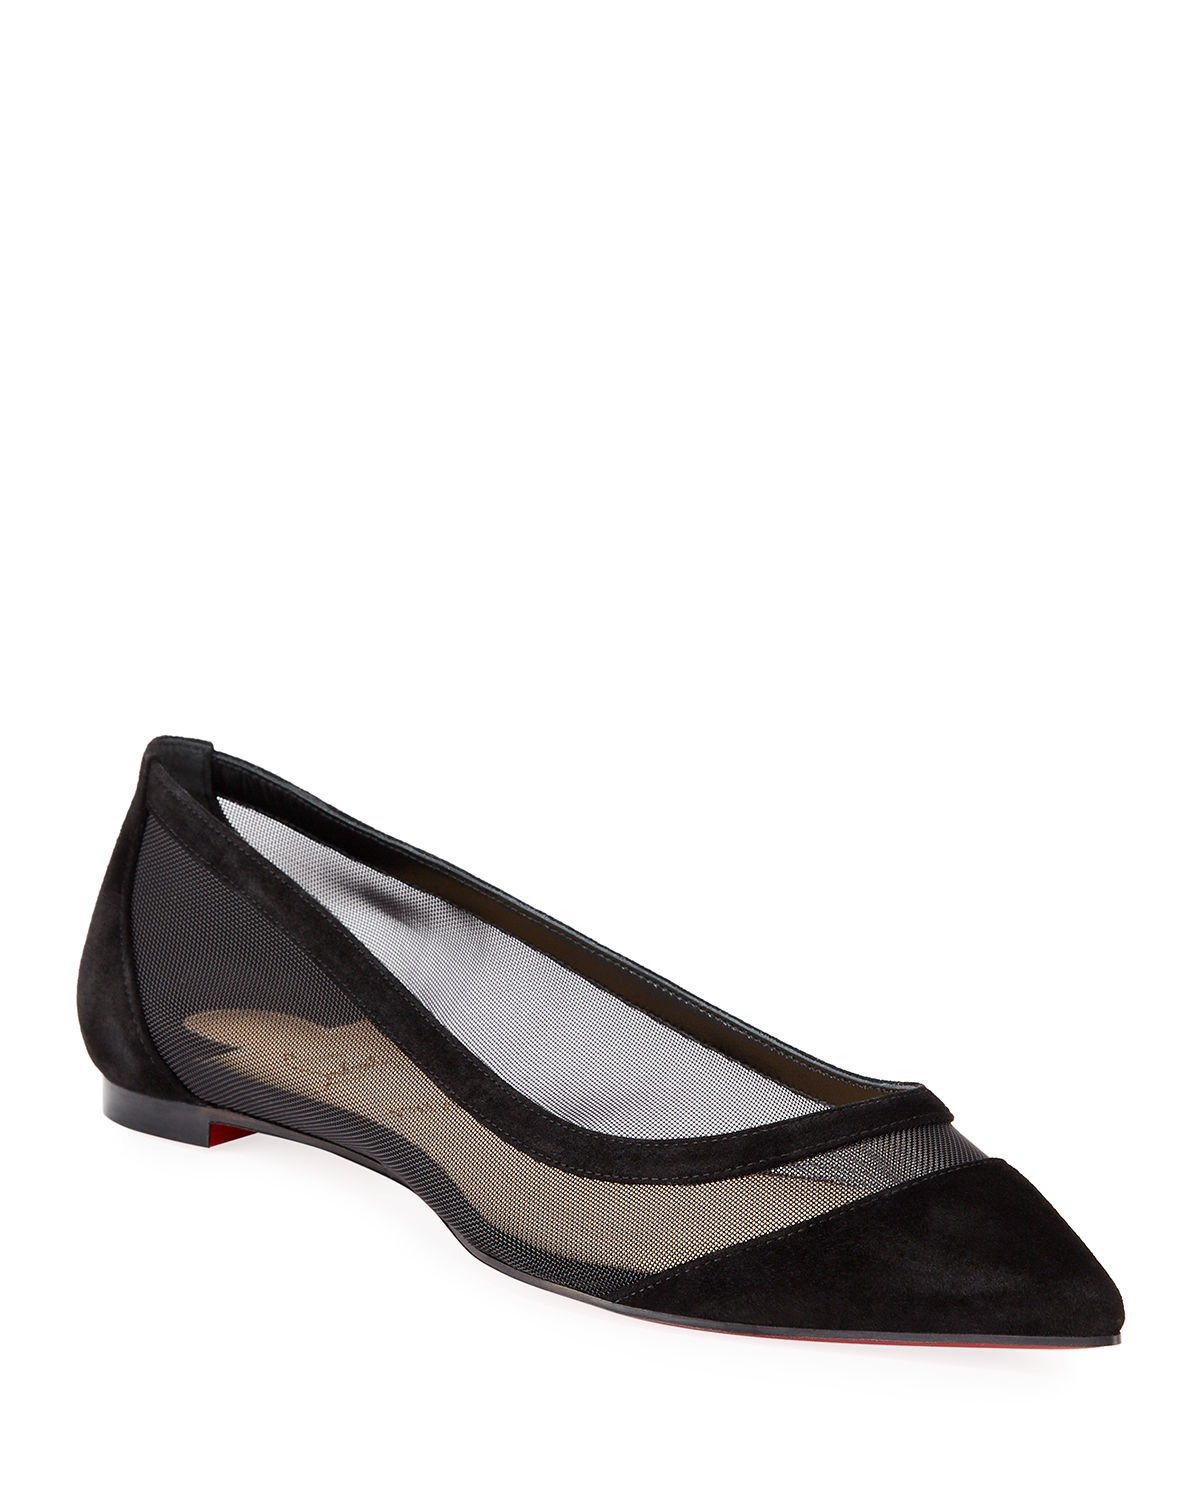 Christian Louboutin Flats GALATIVI MESH POINTED RED SOLE FLATS